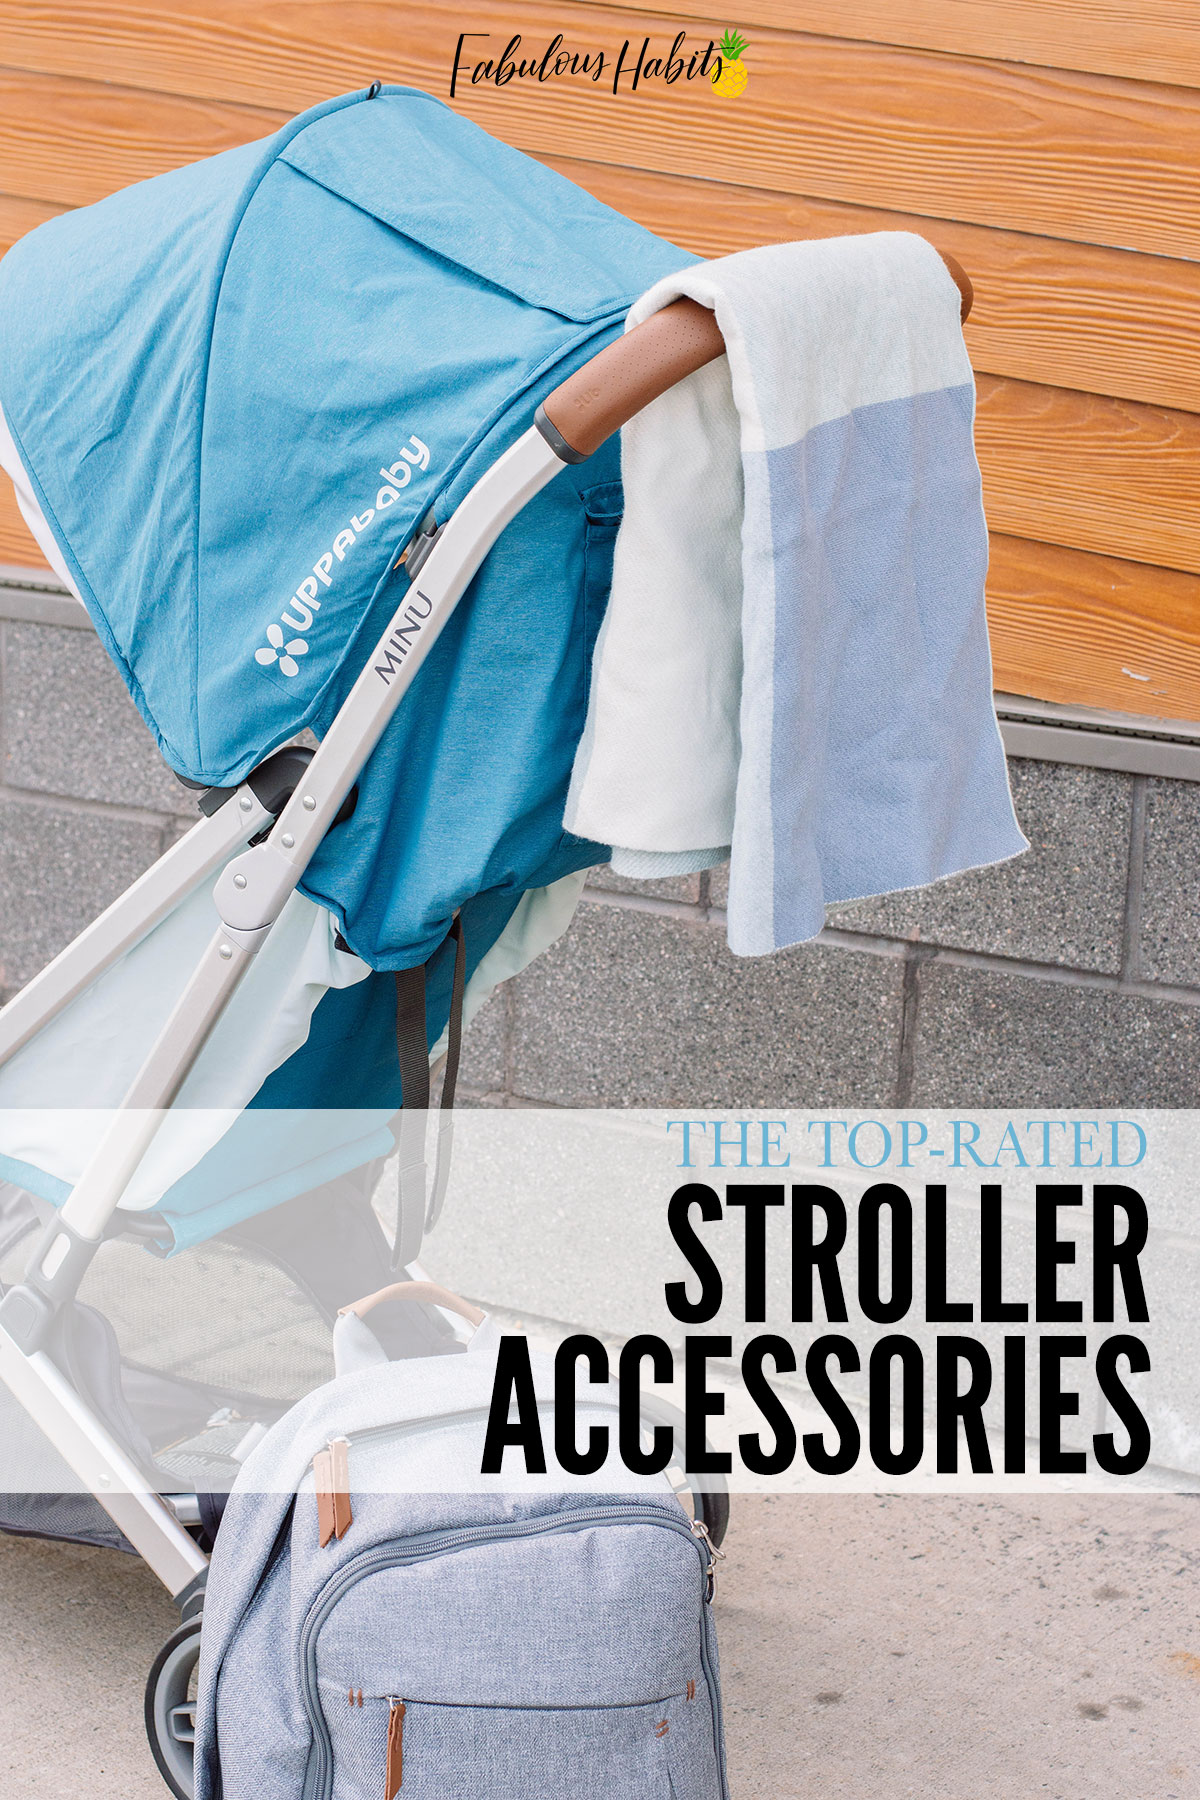 Here are the top-rated stroller accessories to elevate your adventures with your little ones! #strolleraccessories